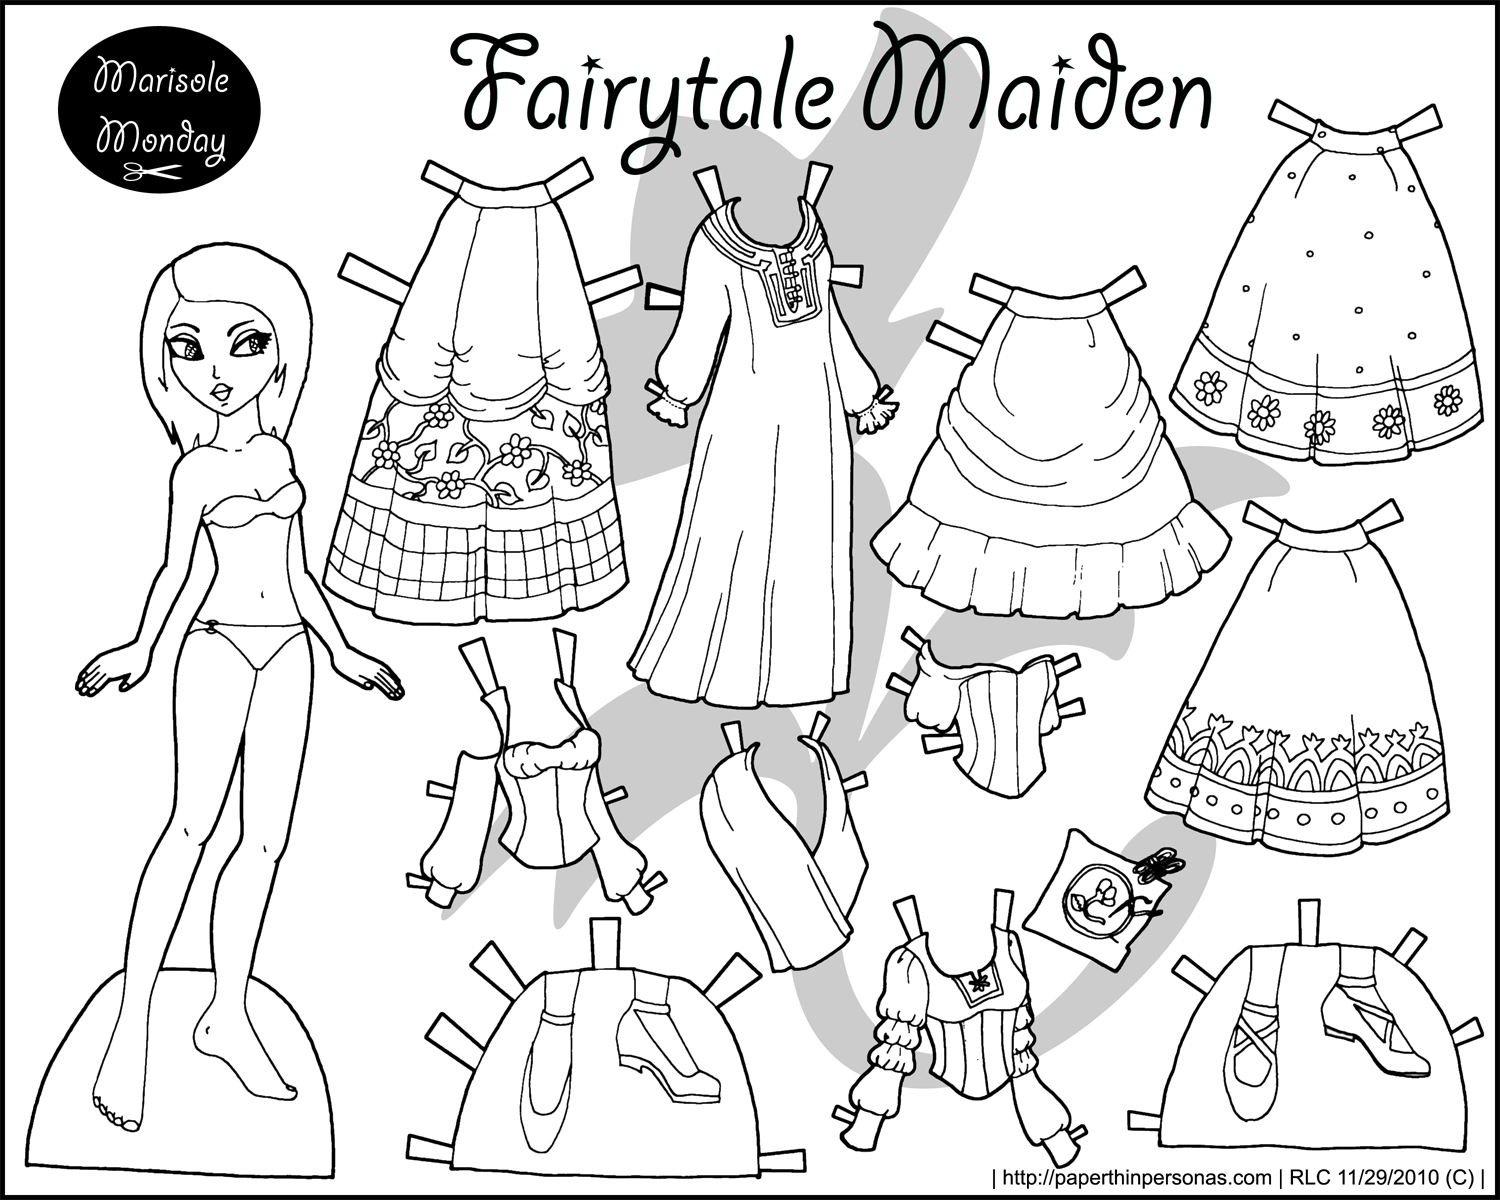 Four Princess Coloring Pages to Print Dress Dolls White paper